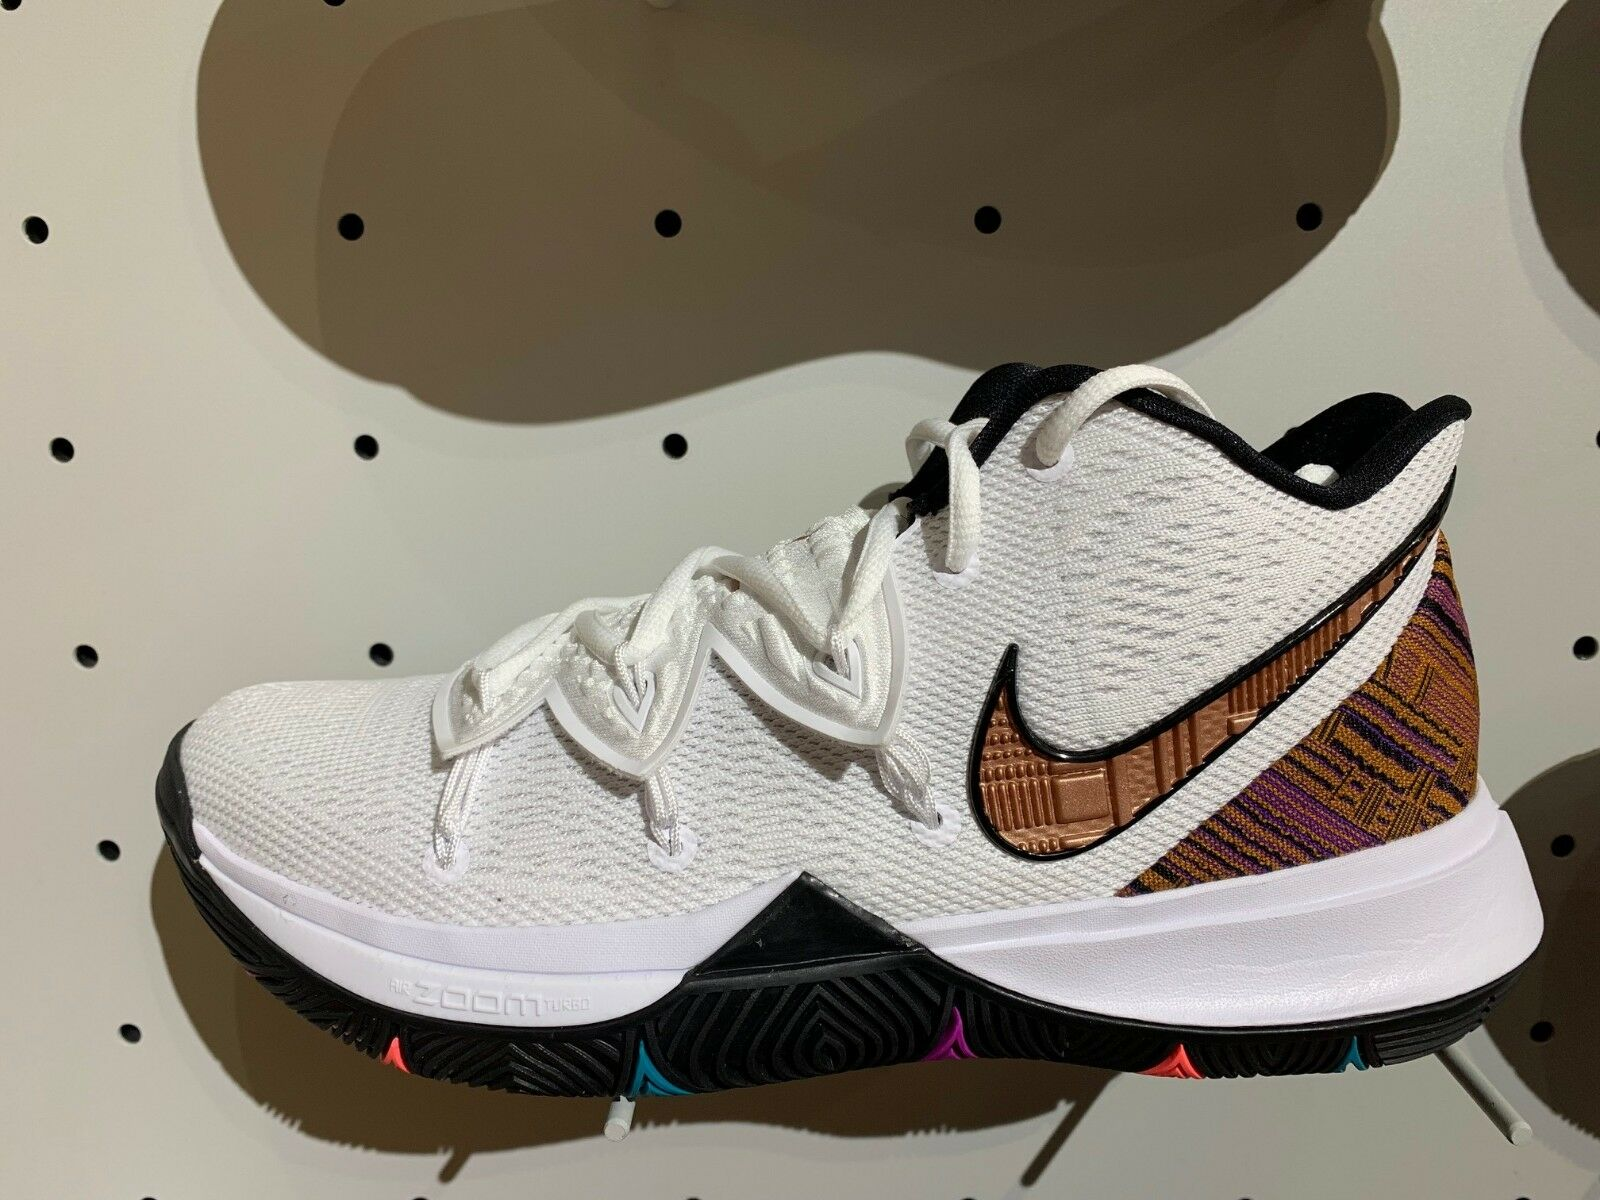 Nike Kyrie Irving 5 V BHM Black History Month White Multi Size 4Y-13 BQ6237-100